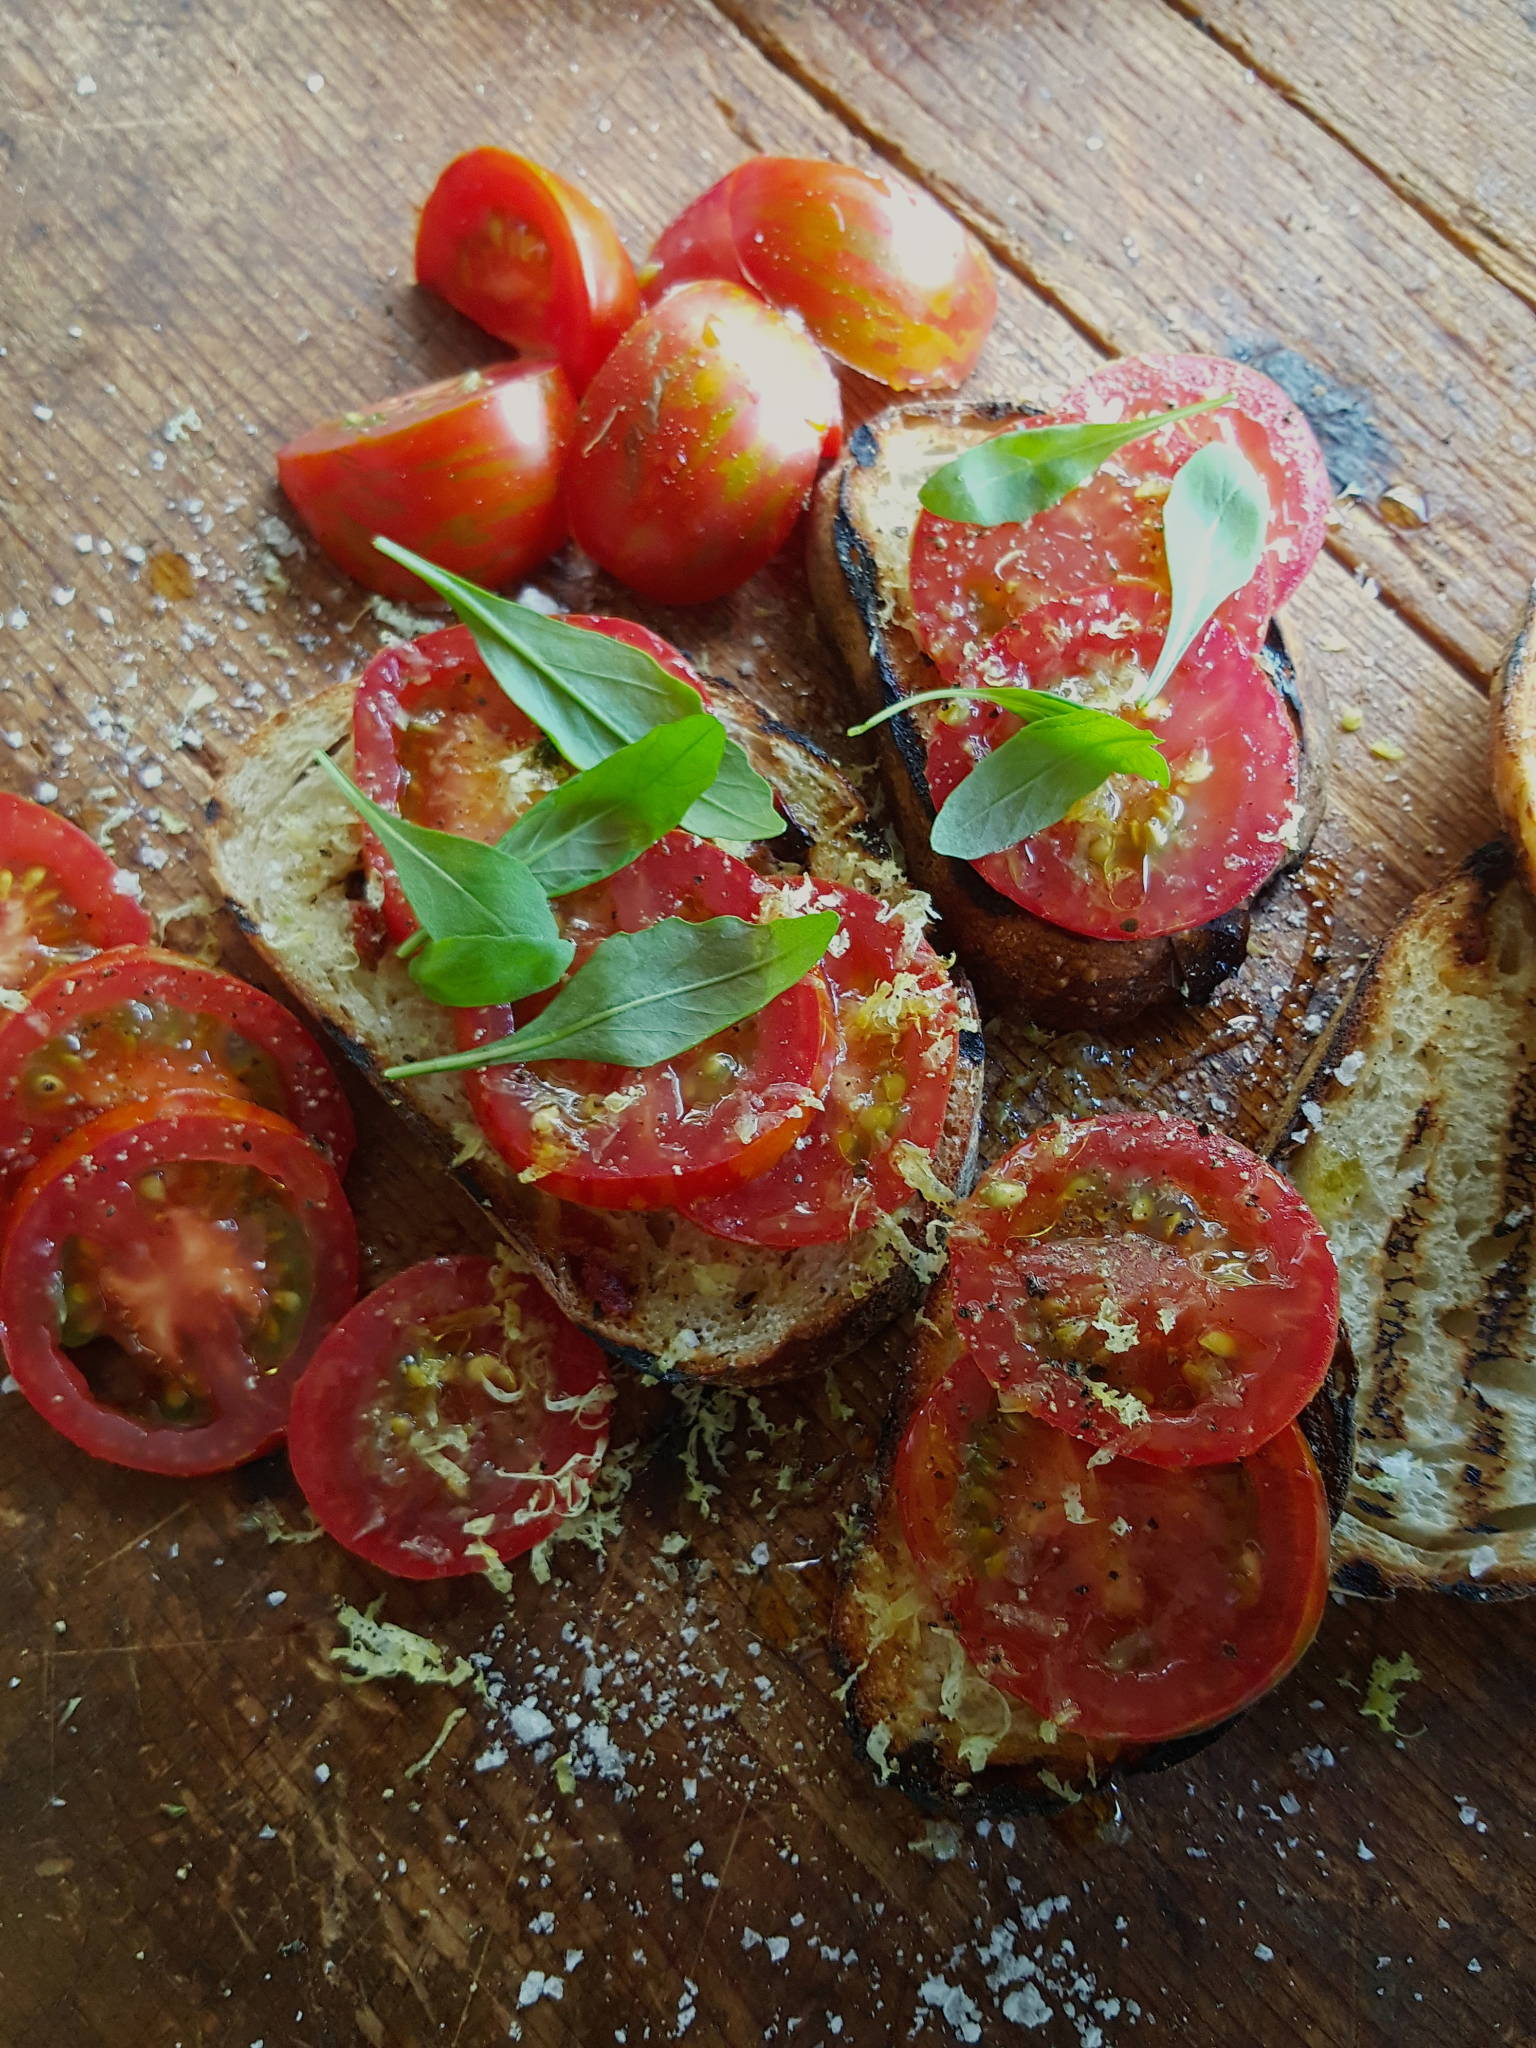 Tomatoes on sourdough